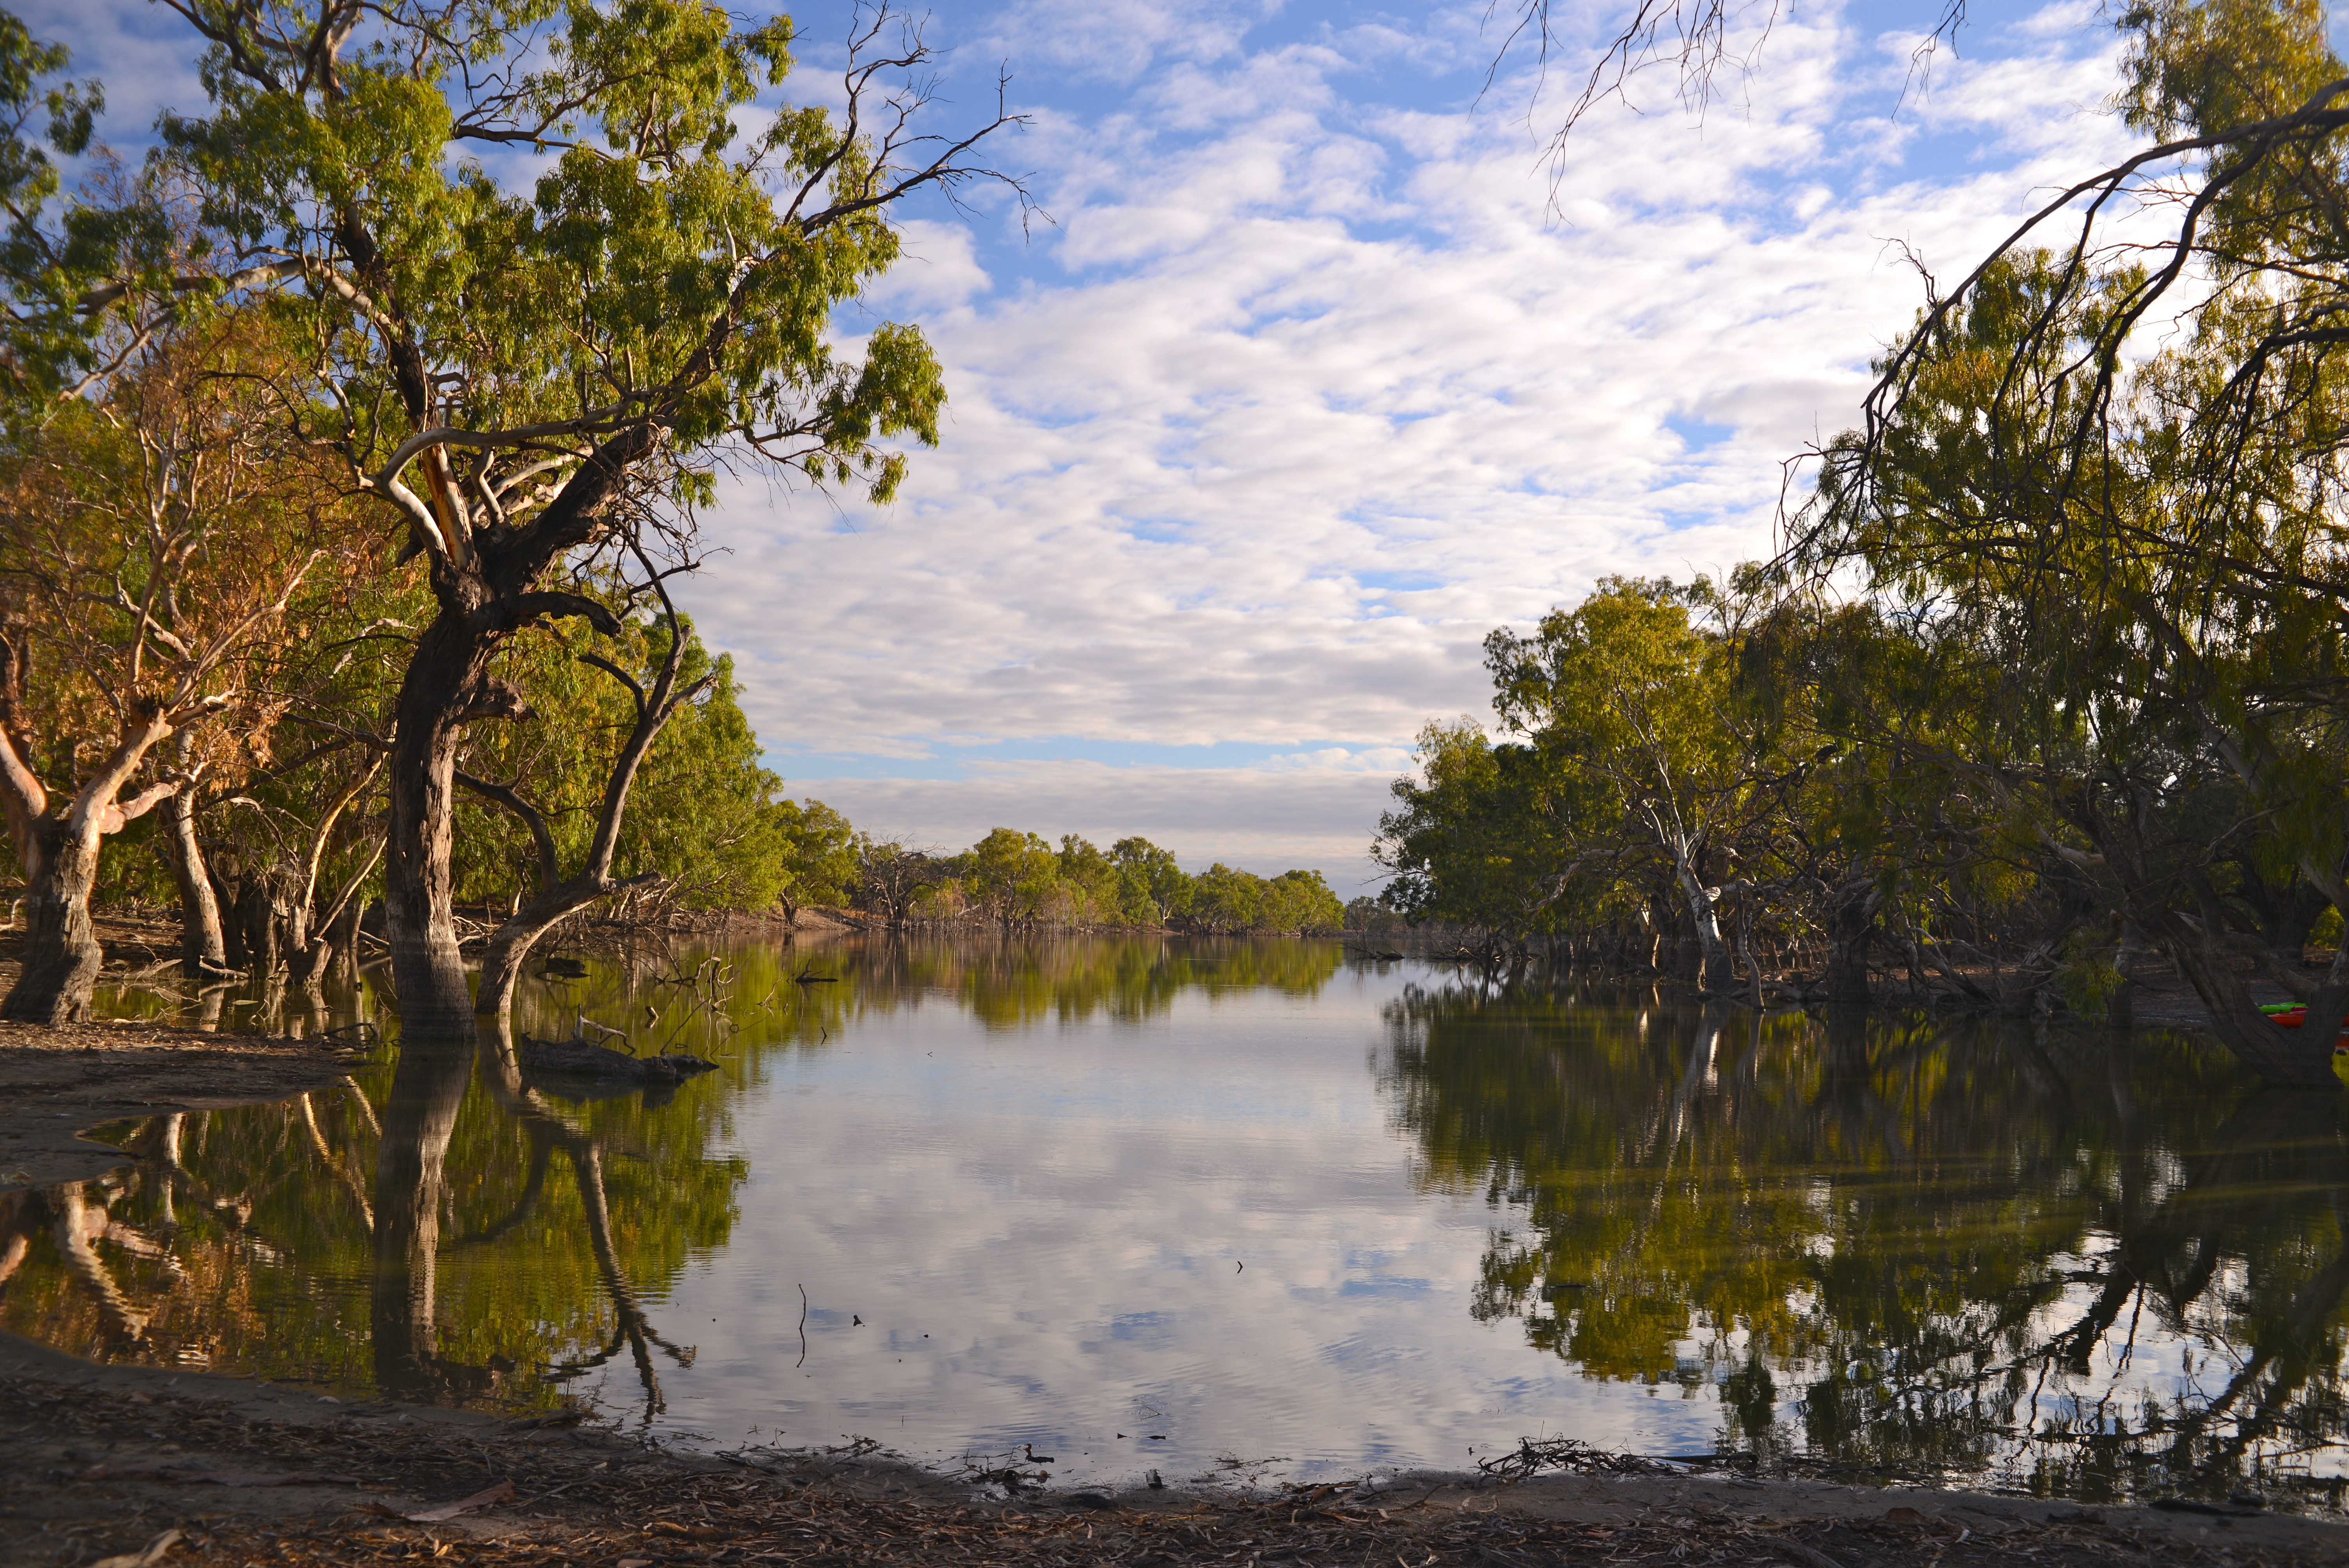 By the Billabong - Trilby Station (Outback Australia)